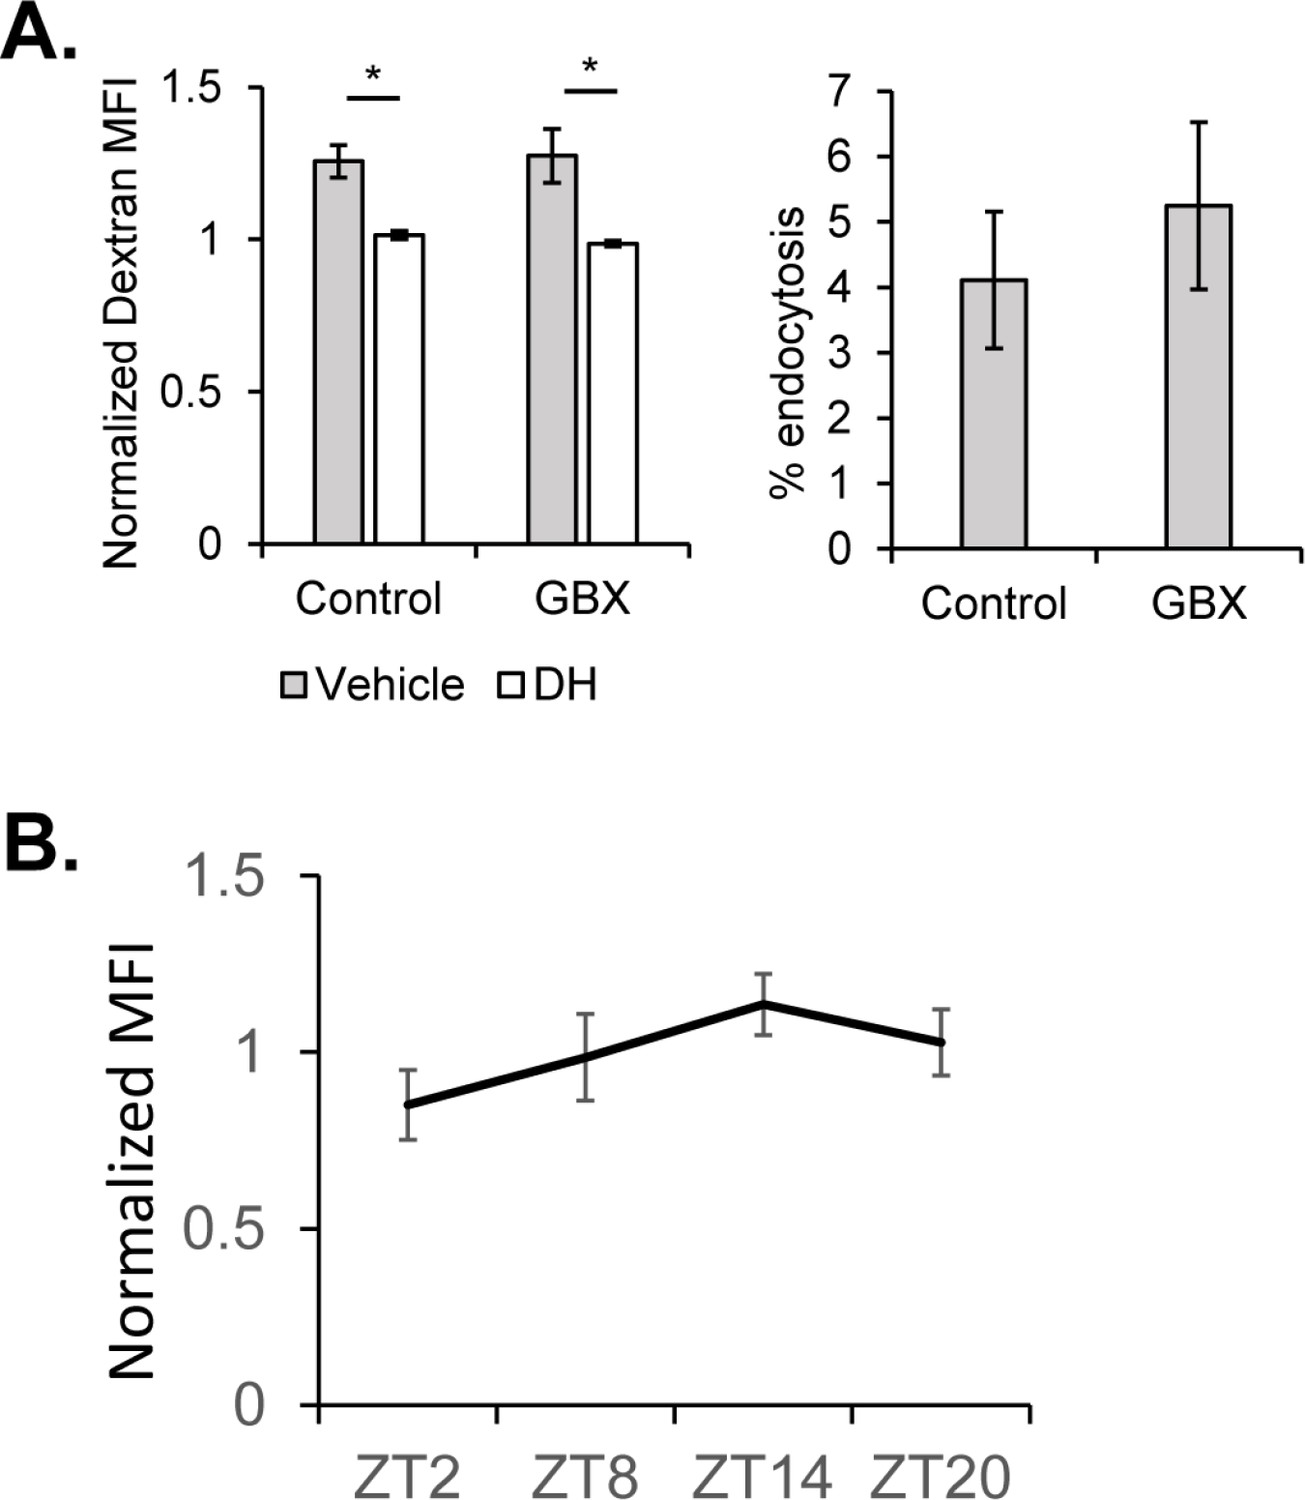 Endocytosis At The Drosophila Bloodbrain Barrier As A Function For Accessibility Find Equivalent Resistance Rab In Circuit Bbb Across Circadian Timepoints And Upon Gaboxadol Feeding Night Zt14